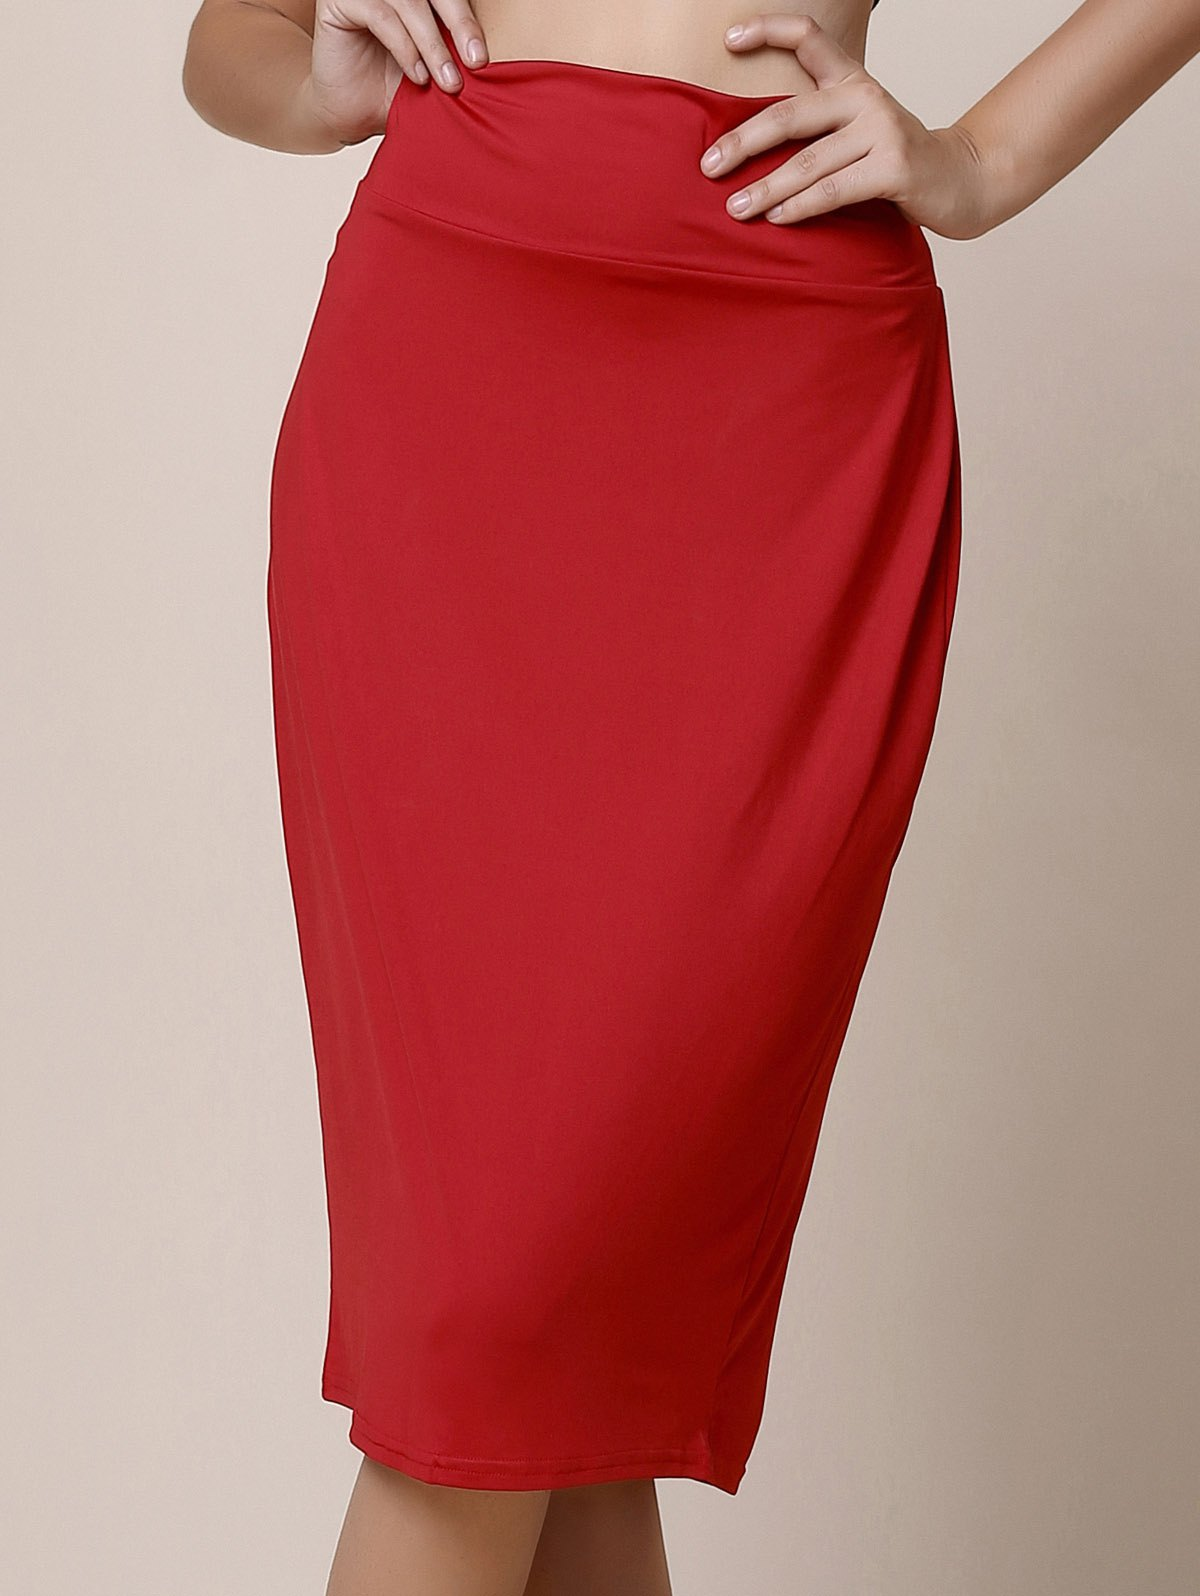 Work Style Solid Color High-Waisted Women's Midi Skirt - RED L